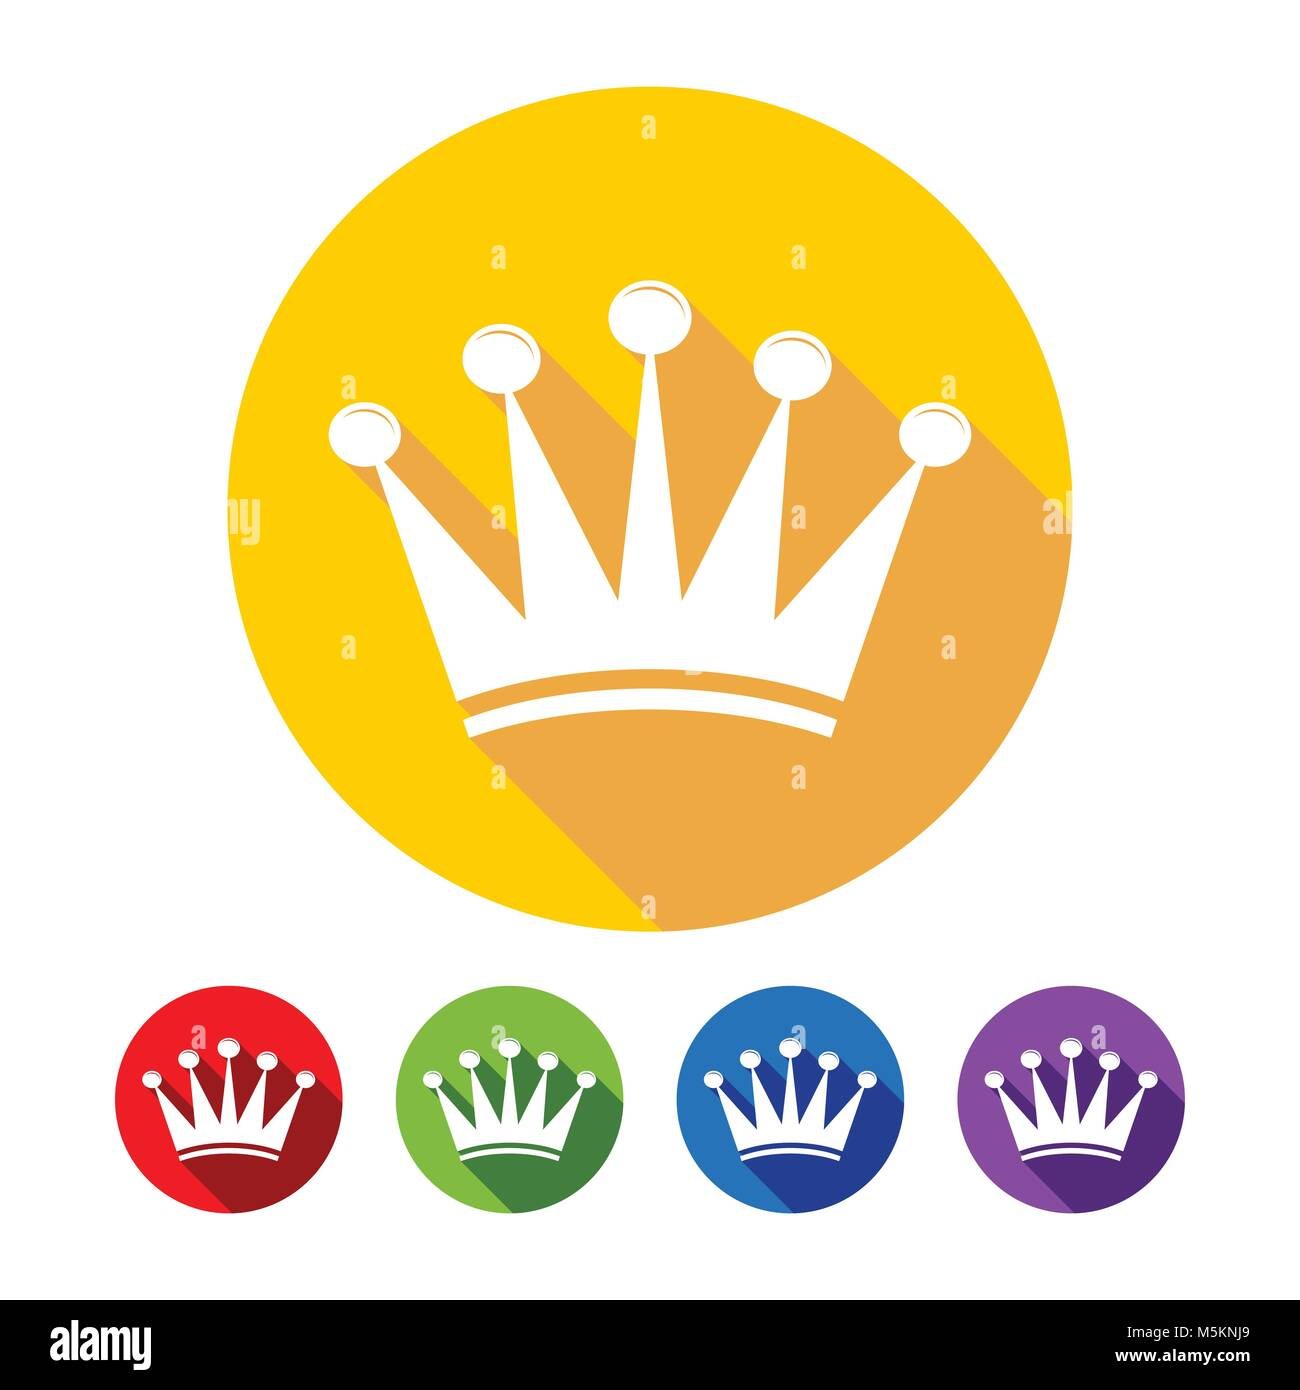 Simple Crown Flat Icons Vector Graphic Design - Stock Vector